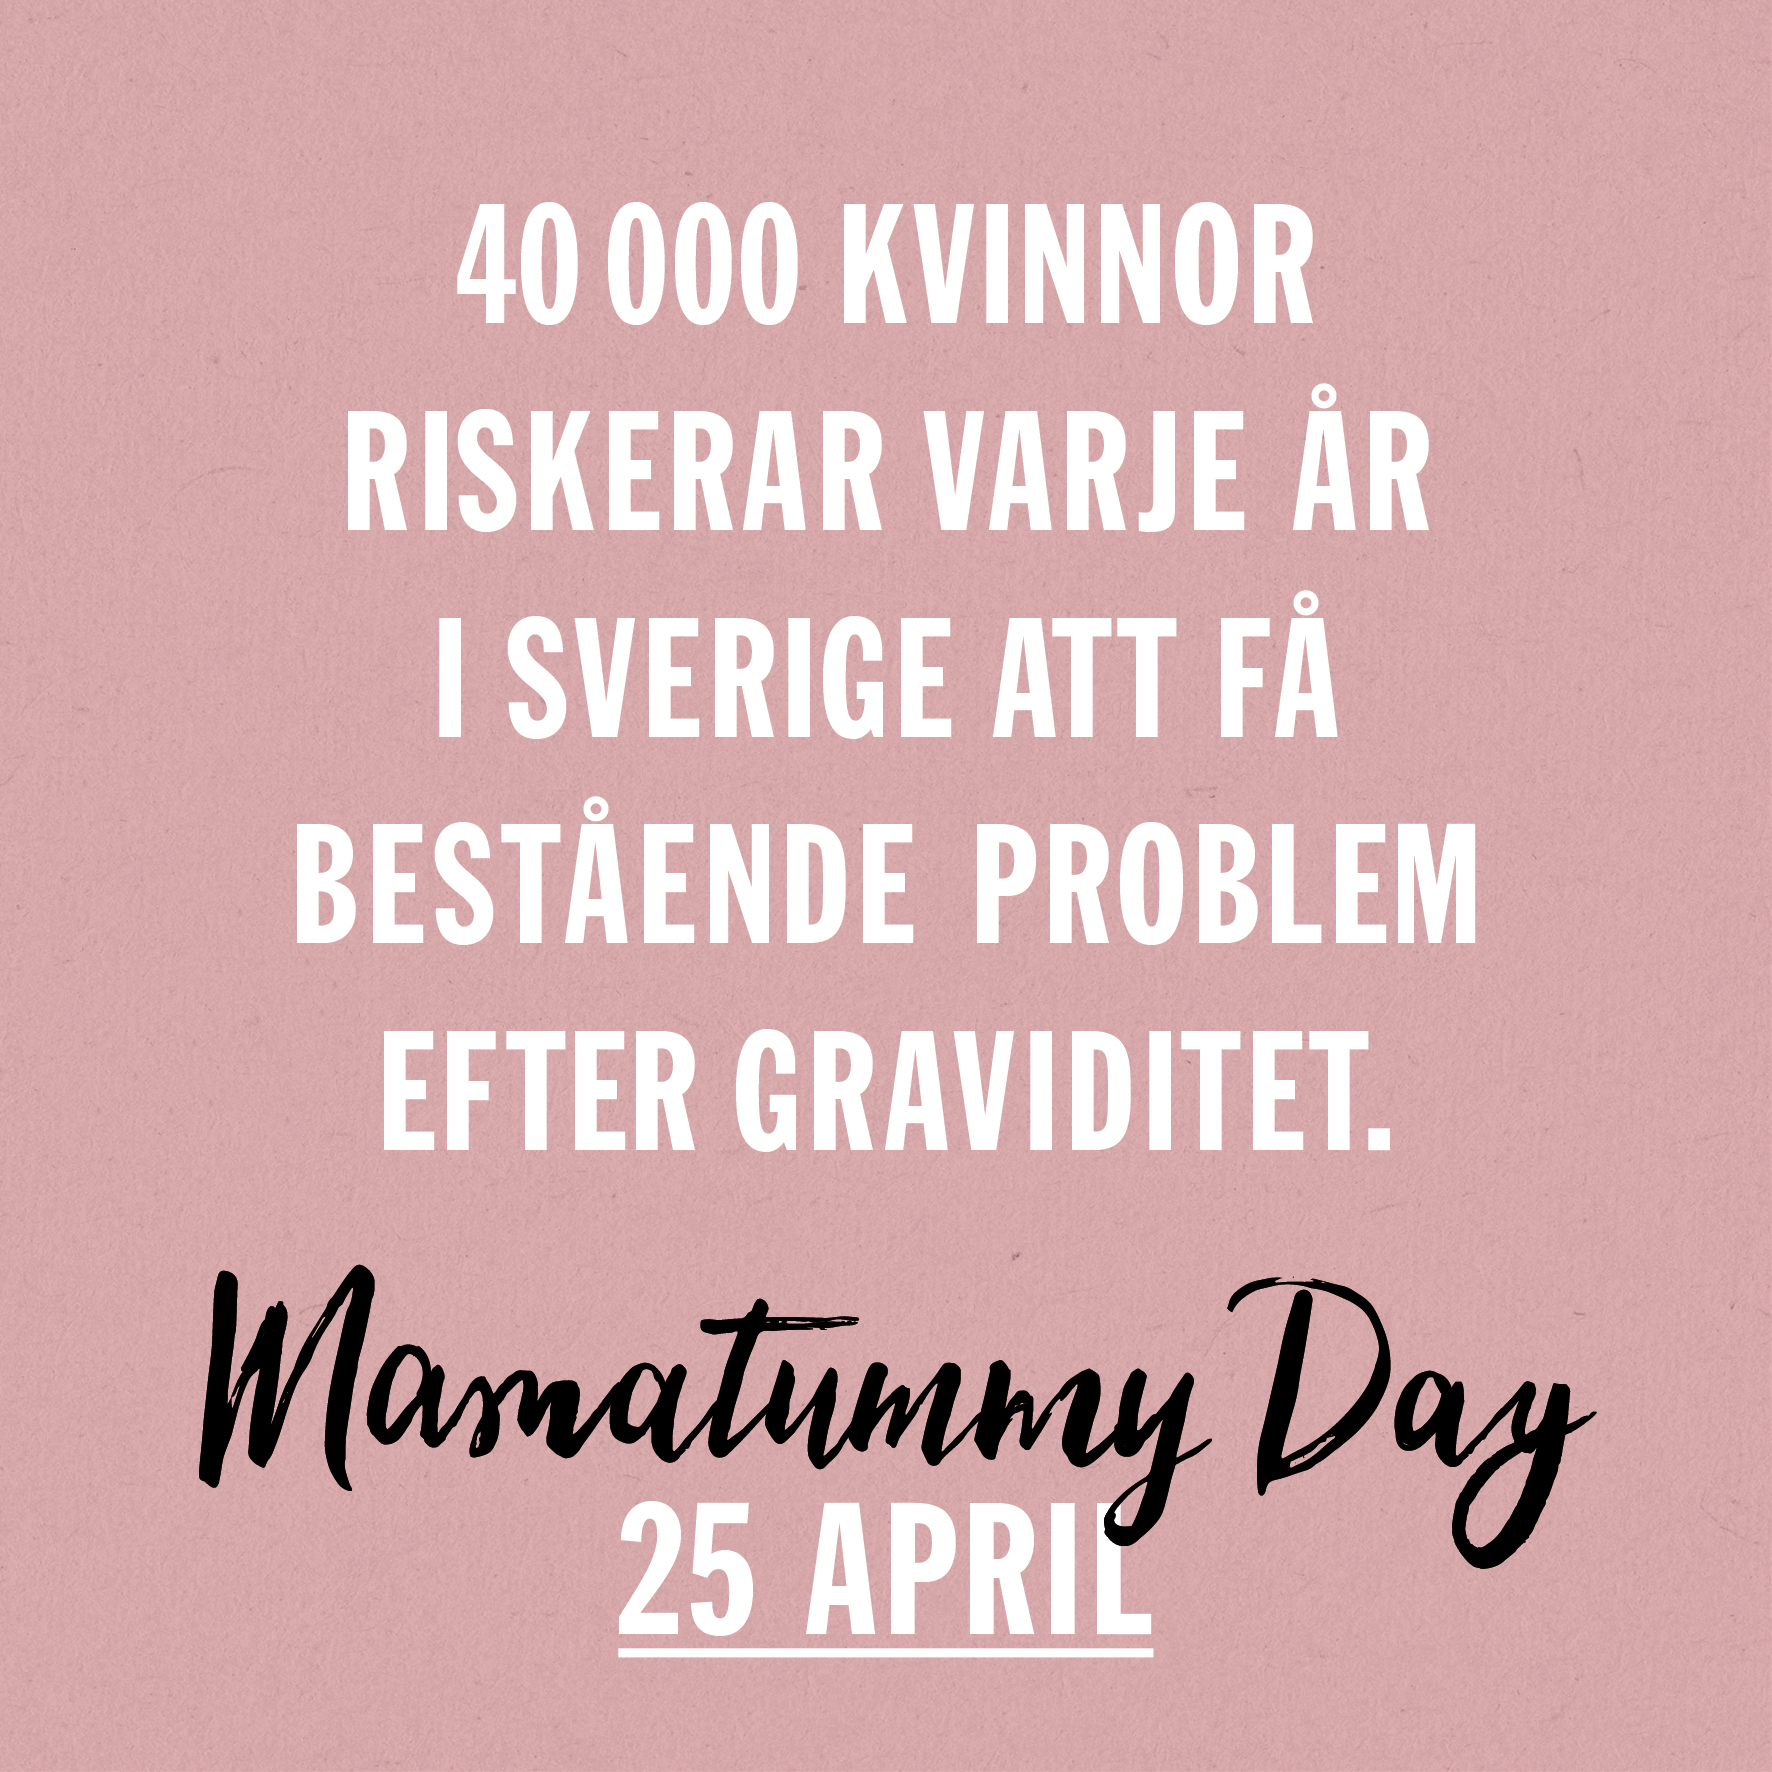 Full fart mot Mamatummy Day